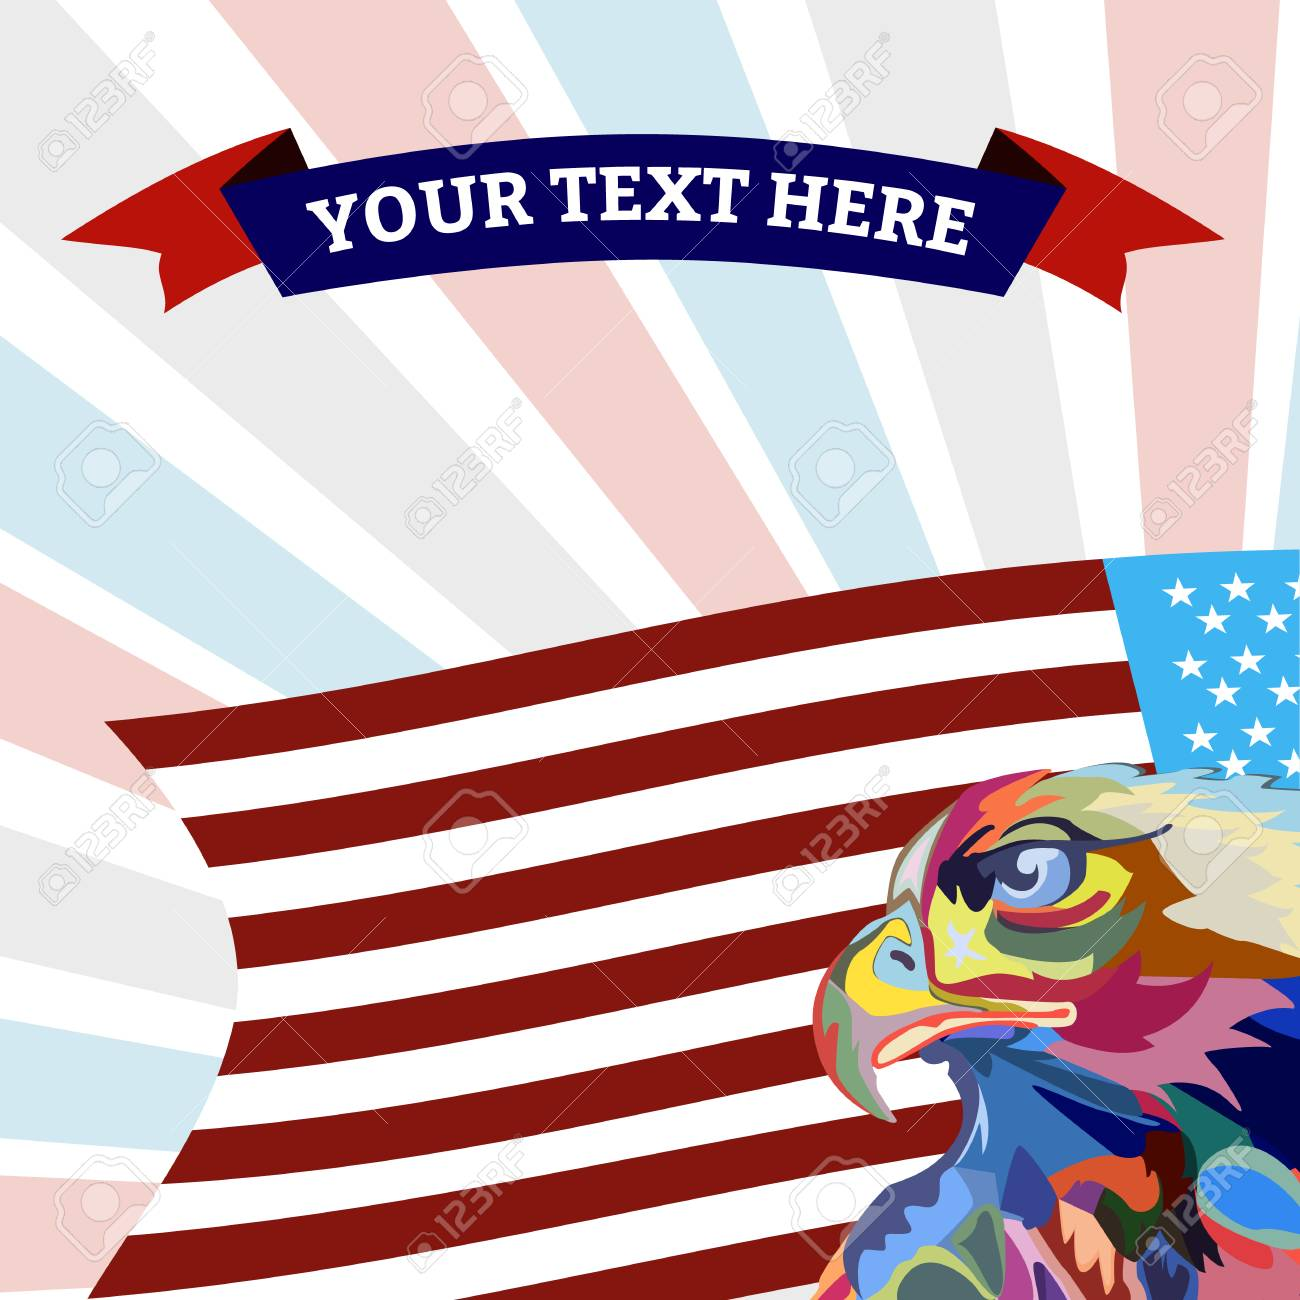 Abstract image of an eagle, a symbol of the United States, vector - 102010458